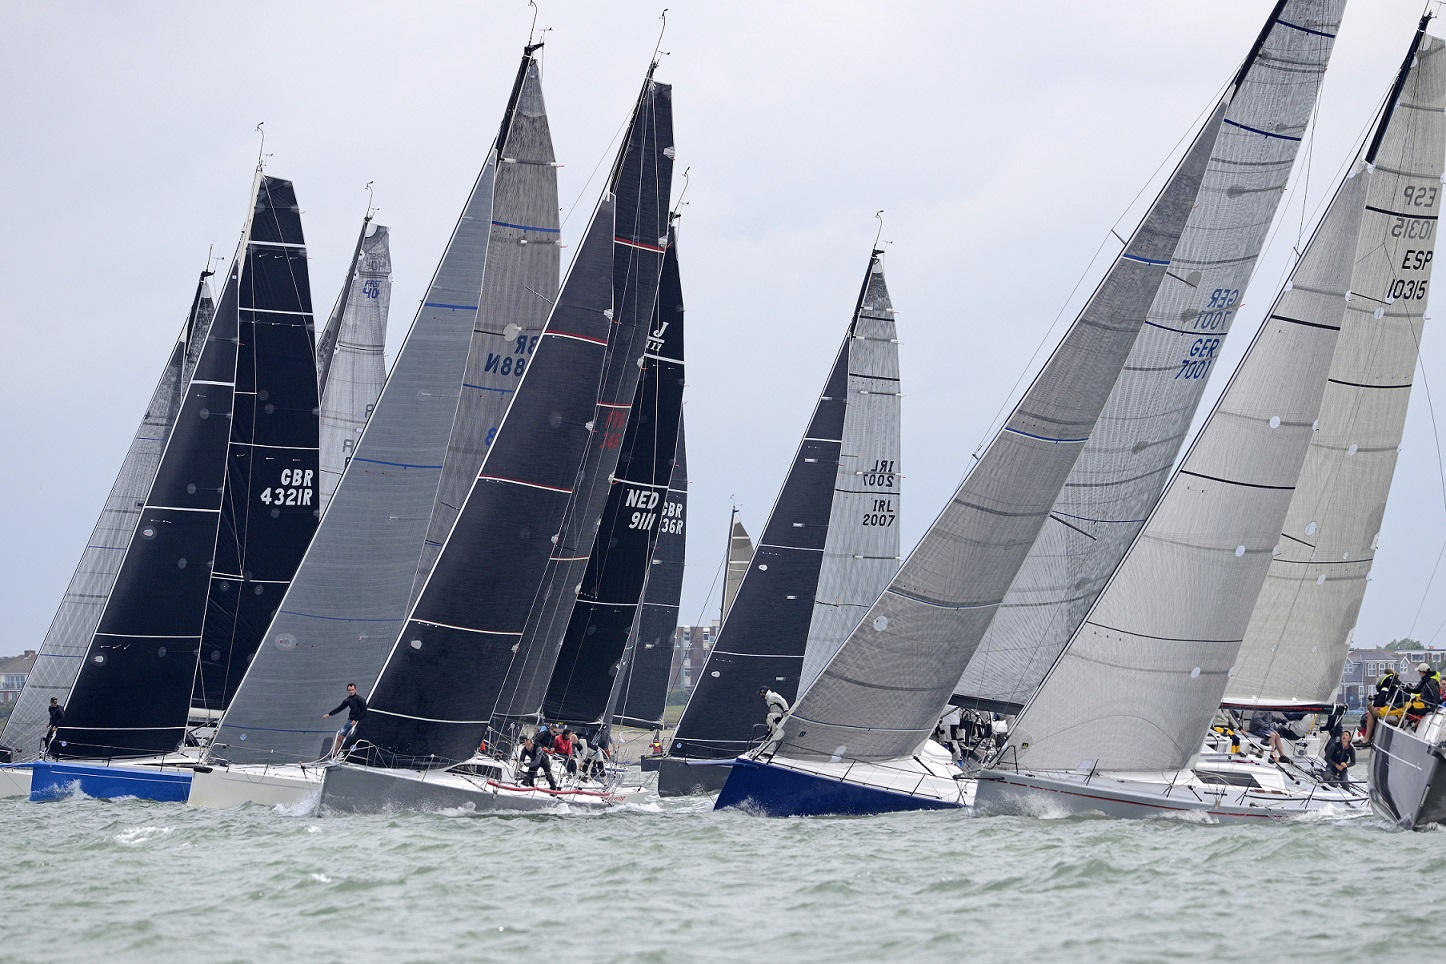 The fleet from day 3 of the 2016 IRC National Championships © Rick Tomlinson